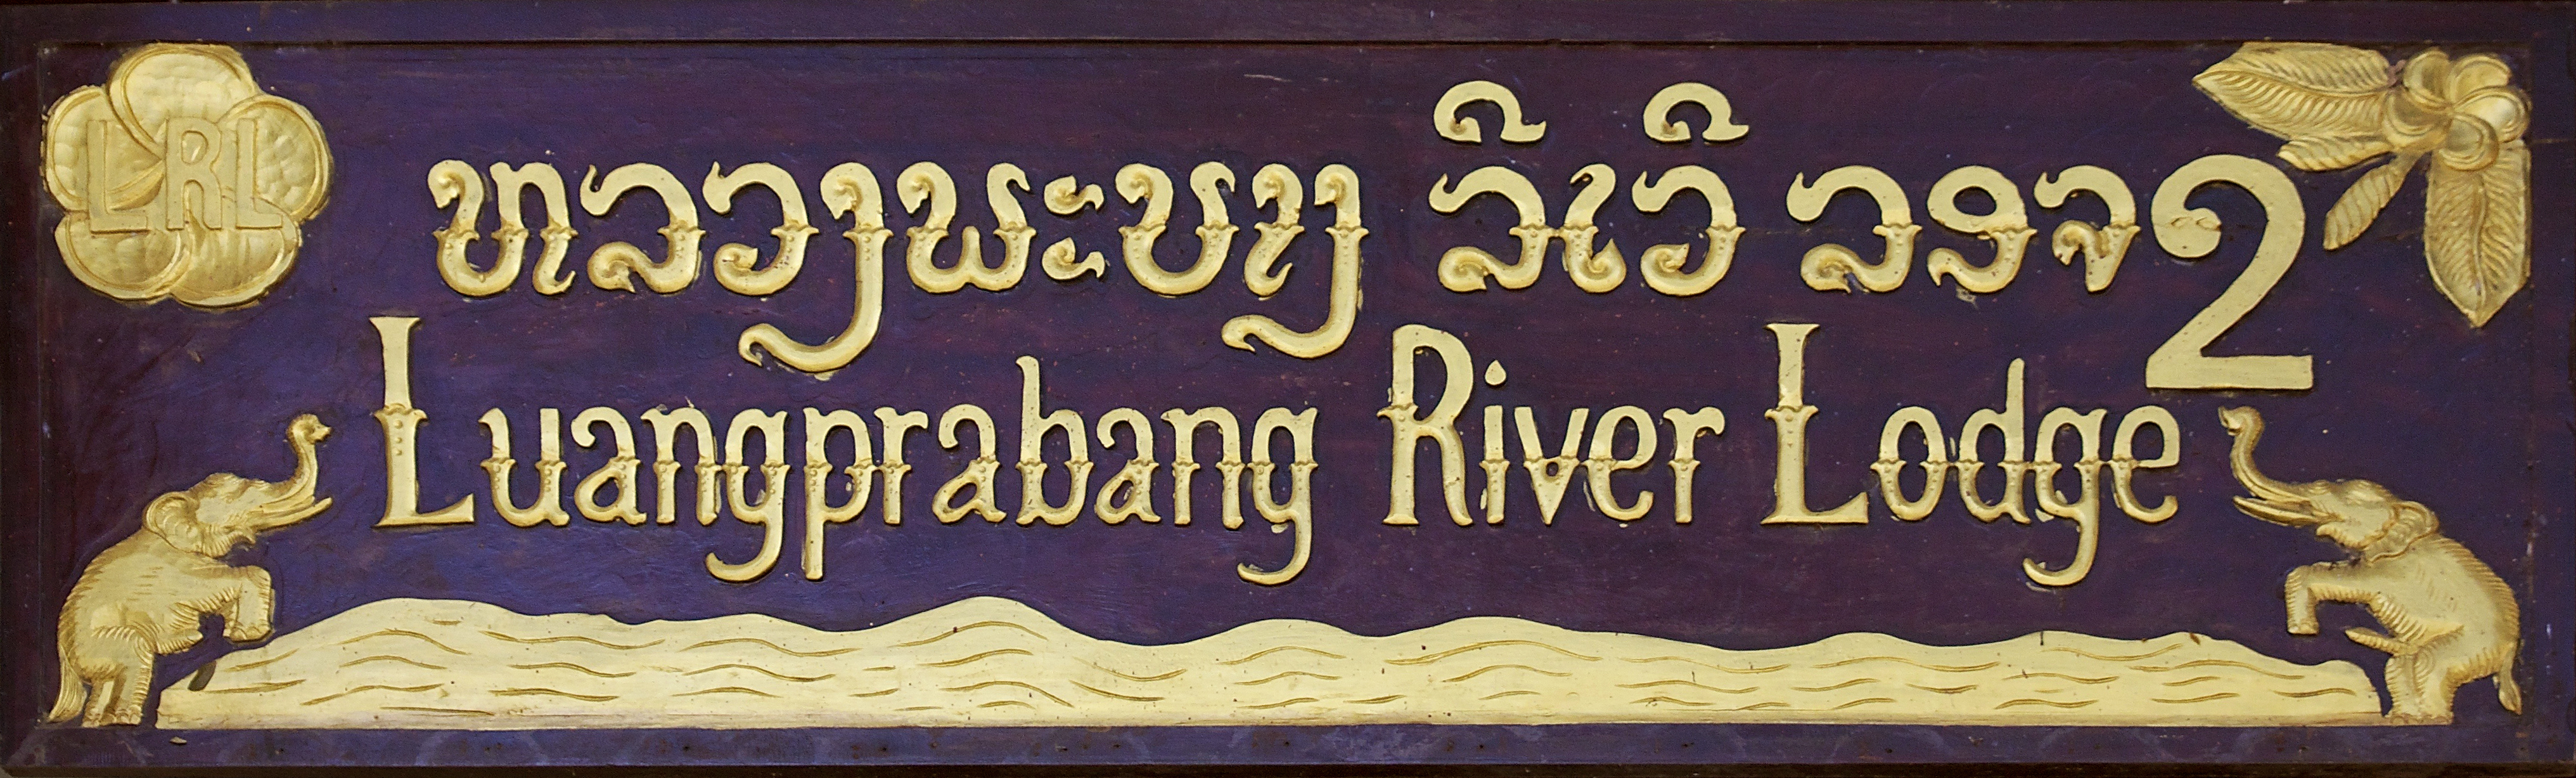 Luang Prabang River Lodge